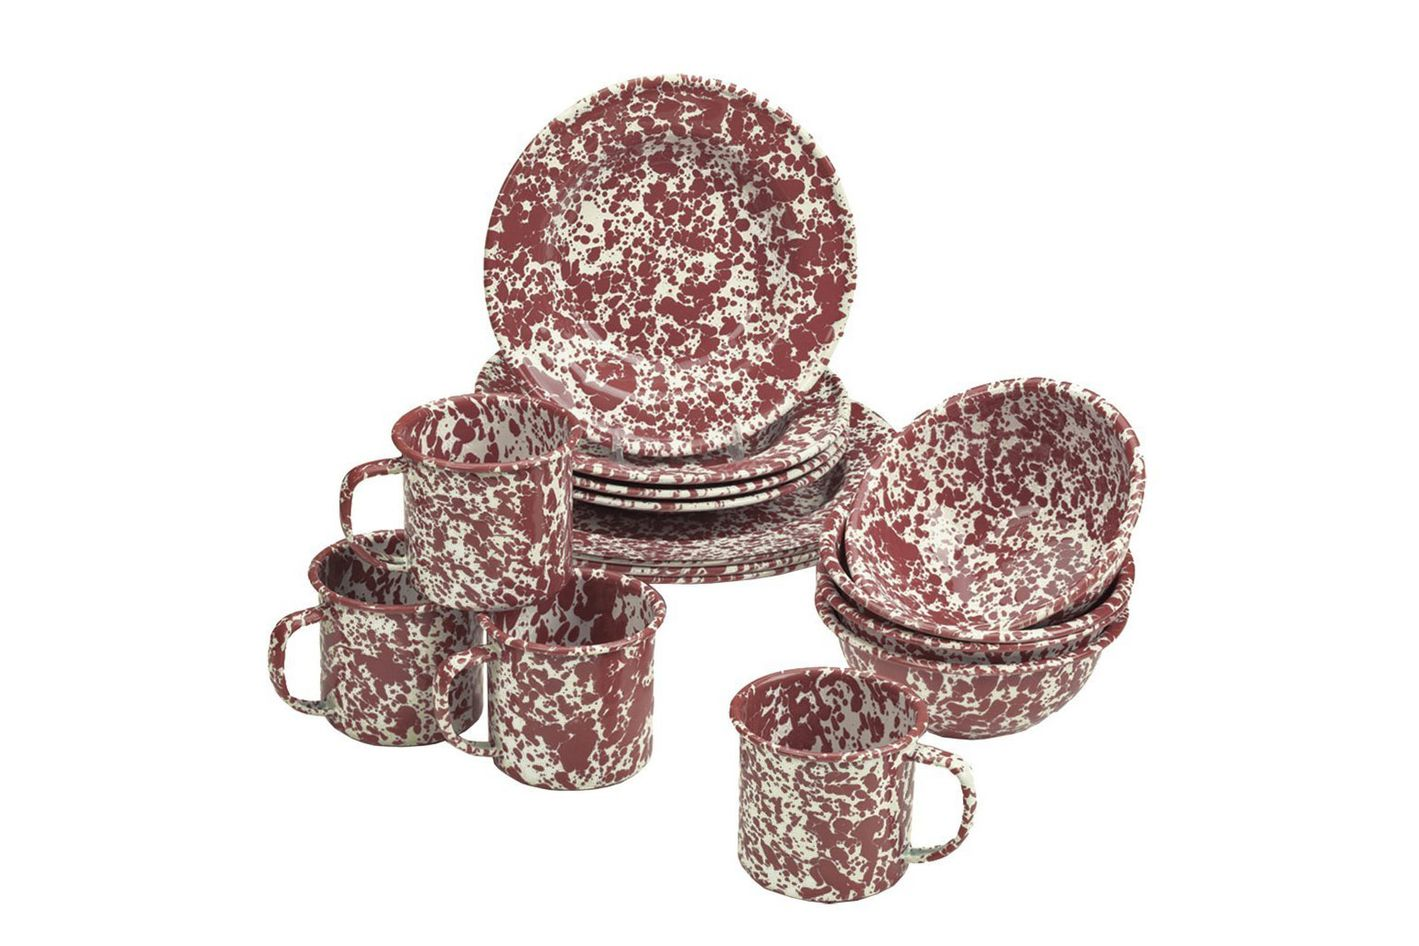 Enamelware 16 Piece Dinnerware Starter Set, Burgundy on Cream Marble